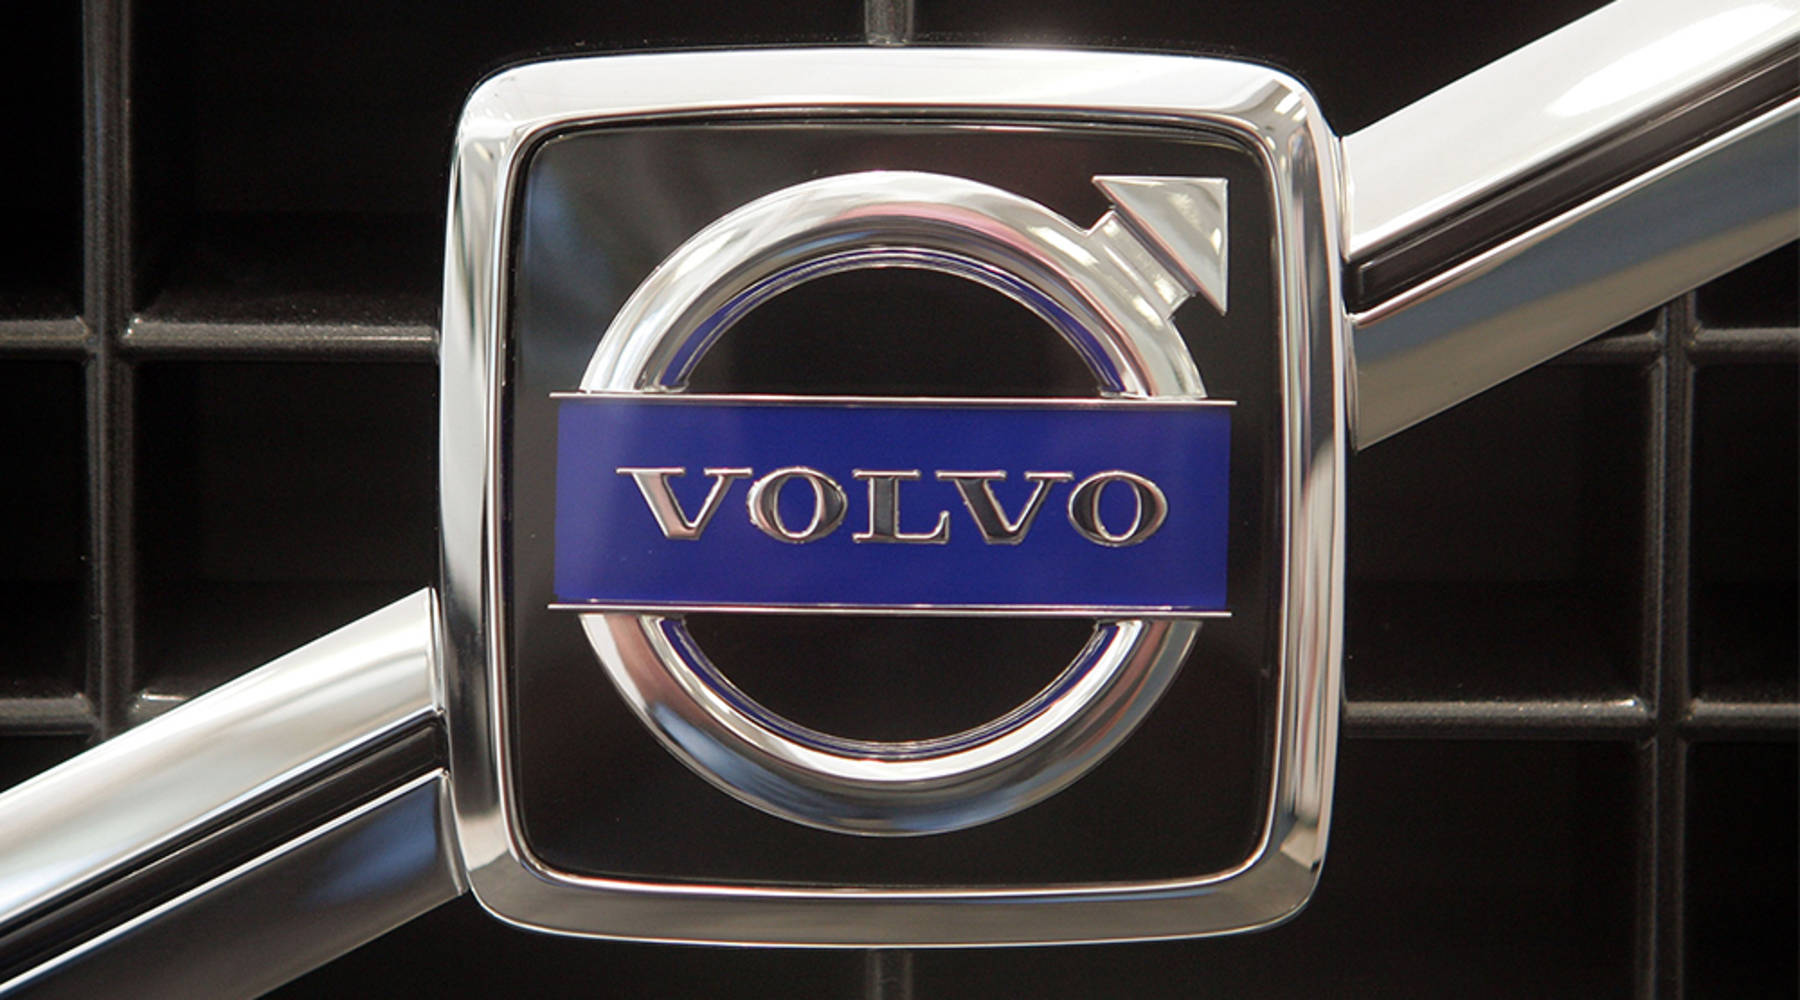 Volvo says driver-facing cameras are key to cutting crashes